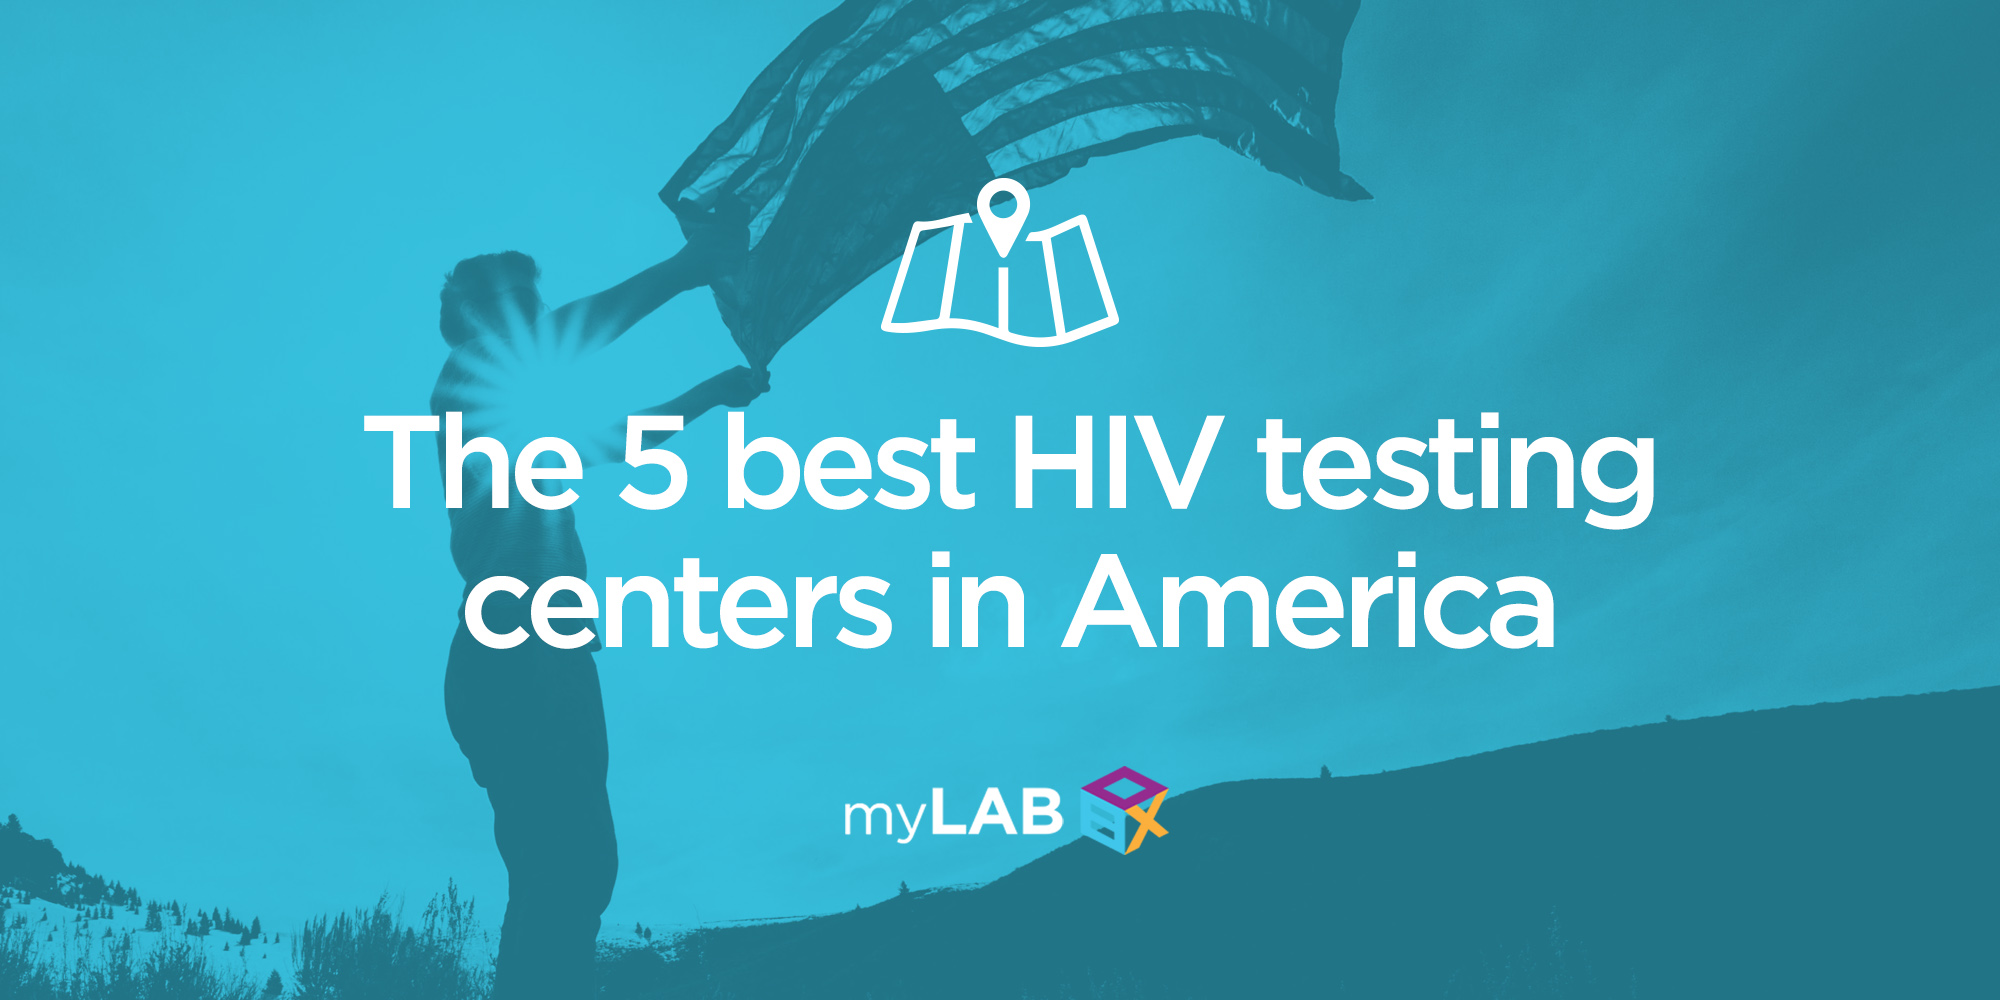 The 5 Best HIV Testing Centers in America